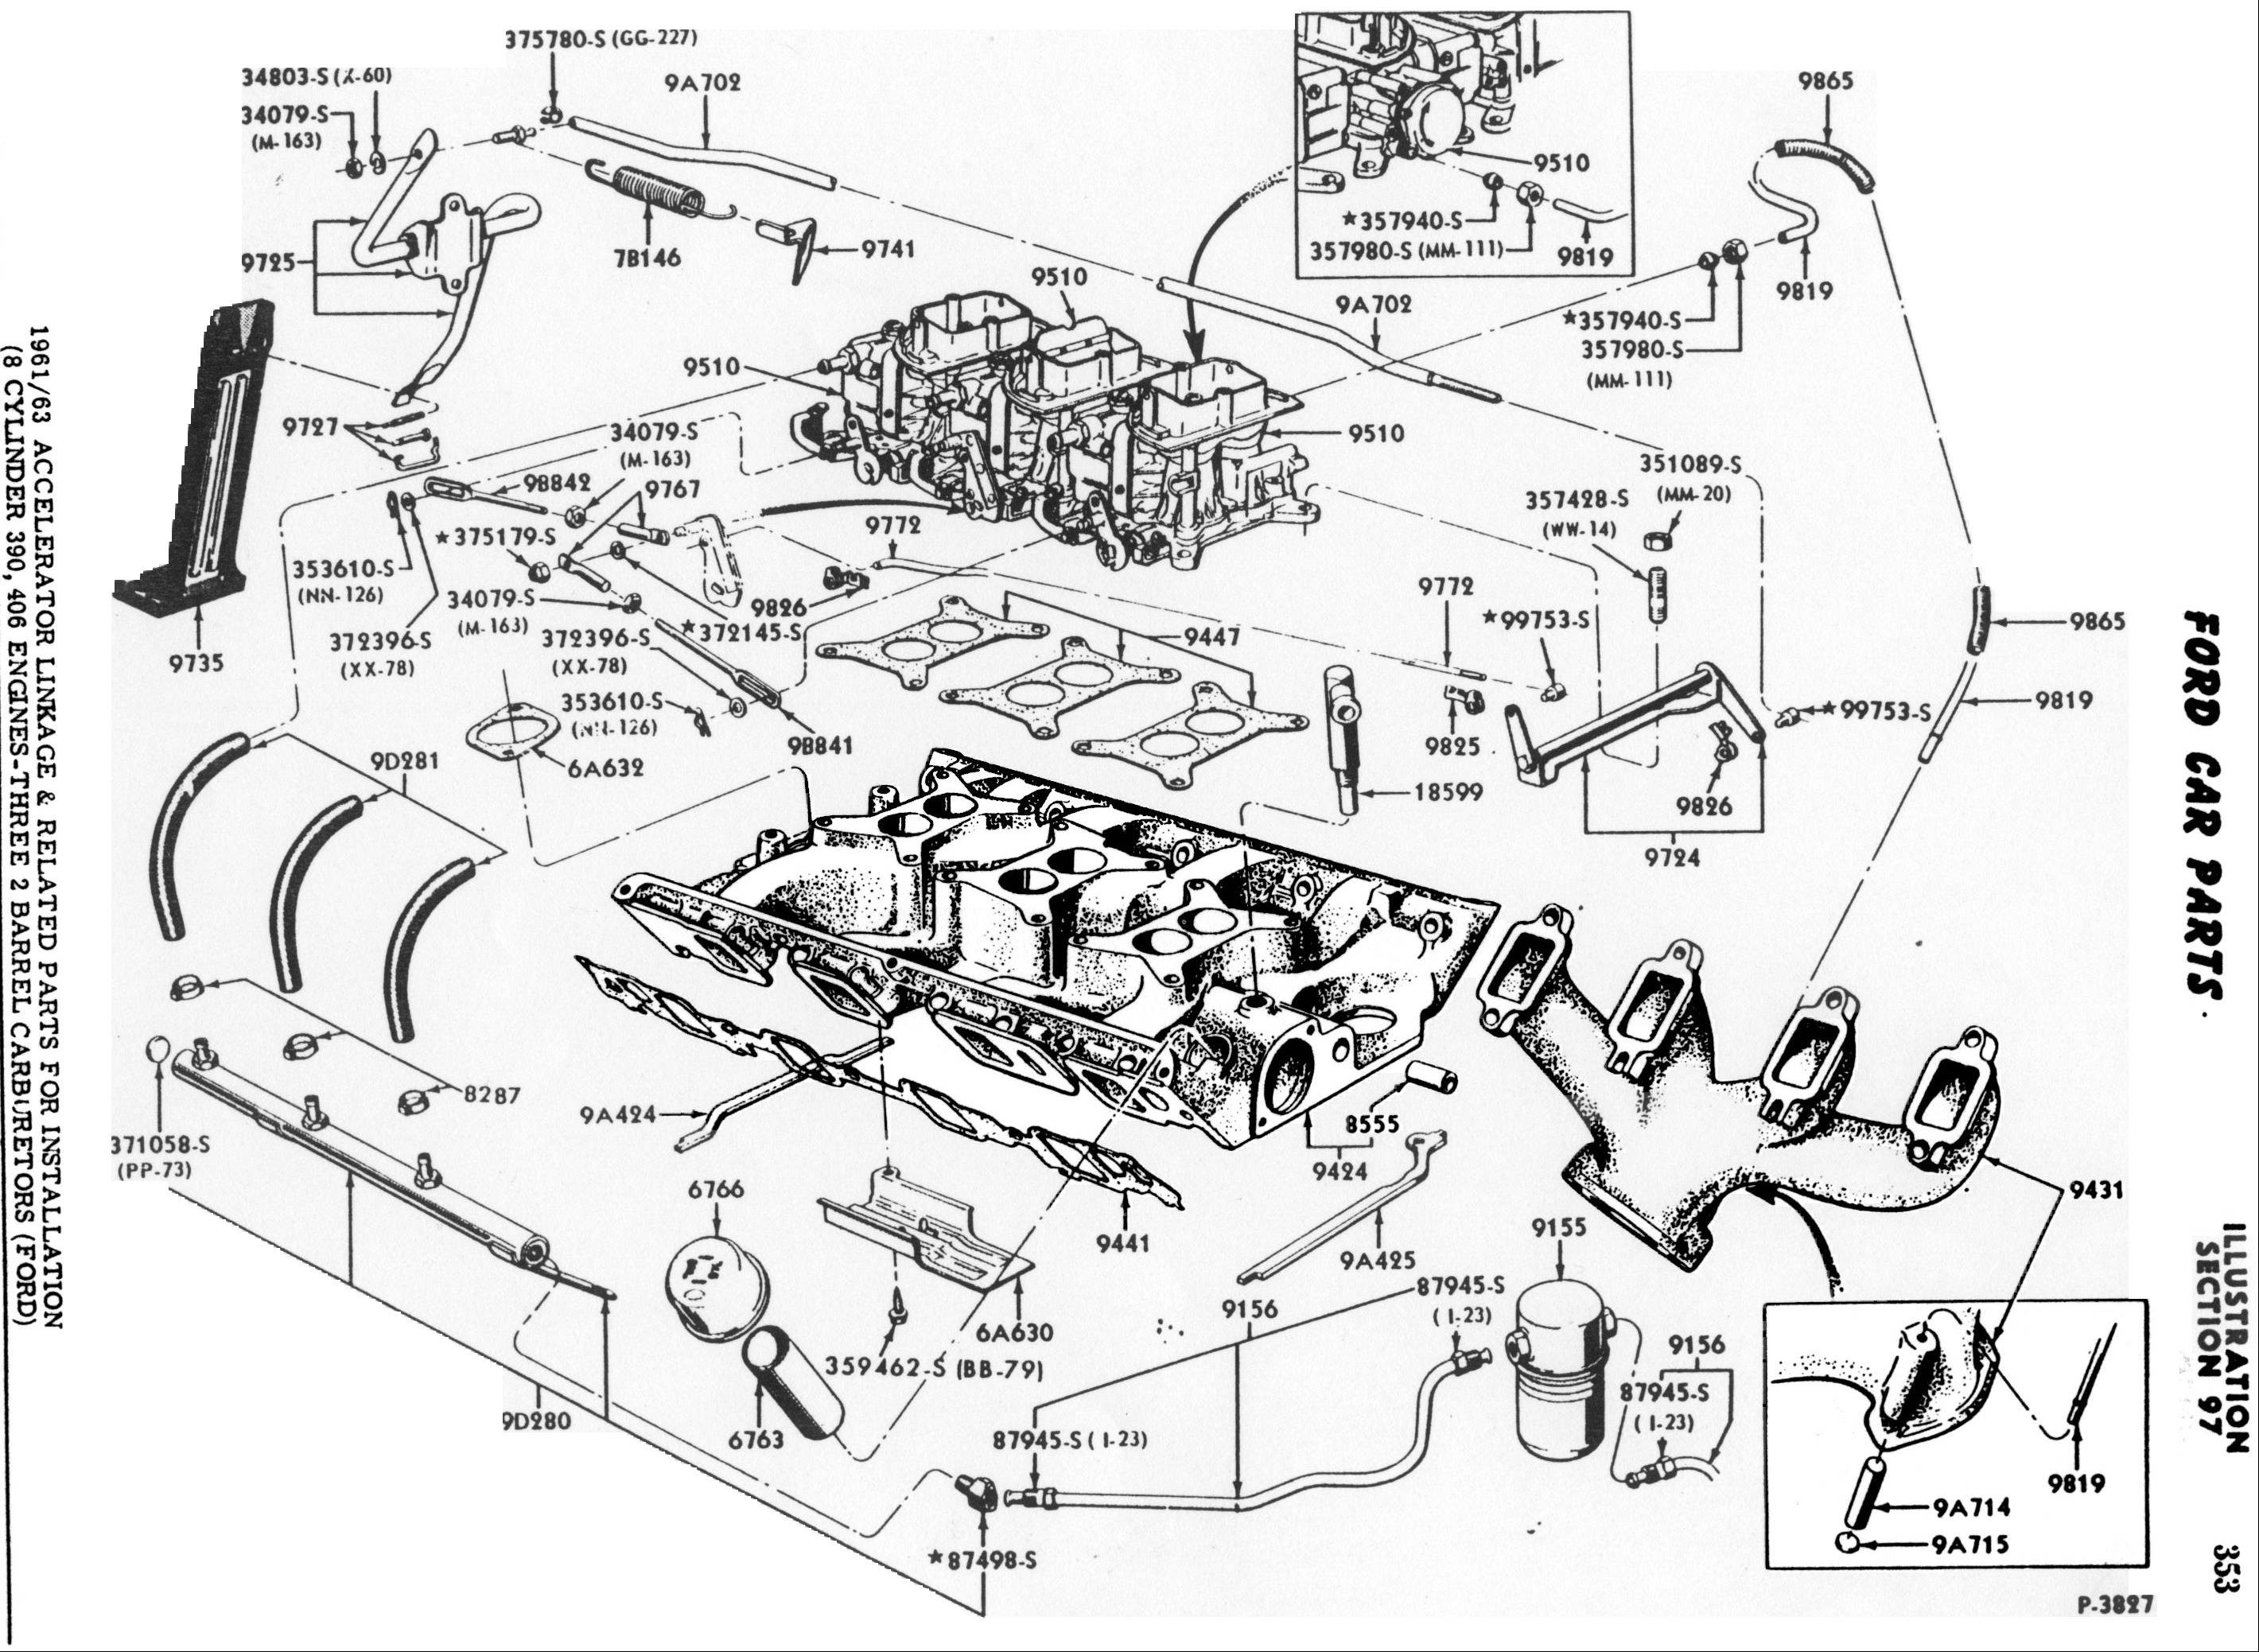 Overhead Valve Engine Diagram How To Build Your Own Sheetmetal Hot Rod 460 Ford Wiring Info Of